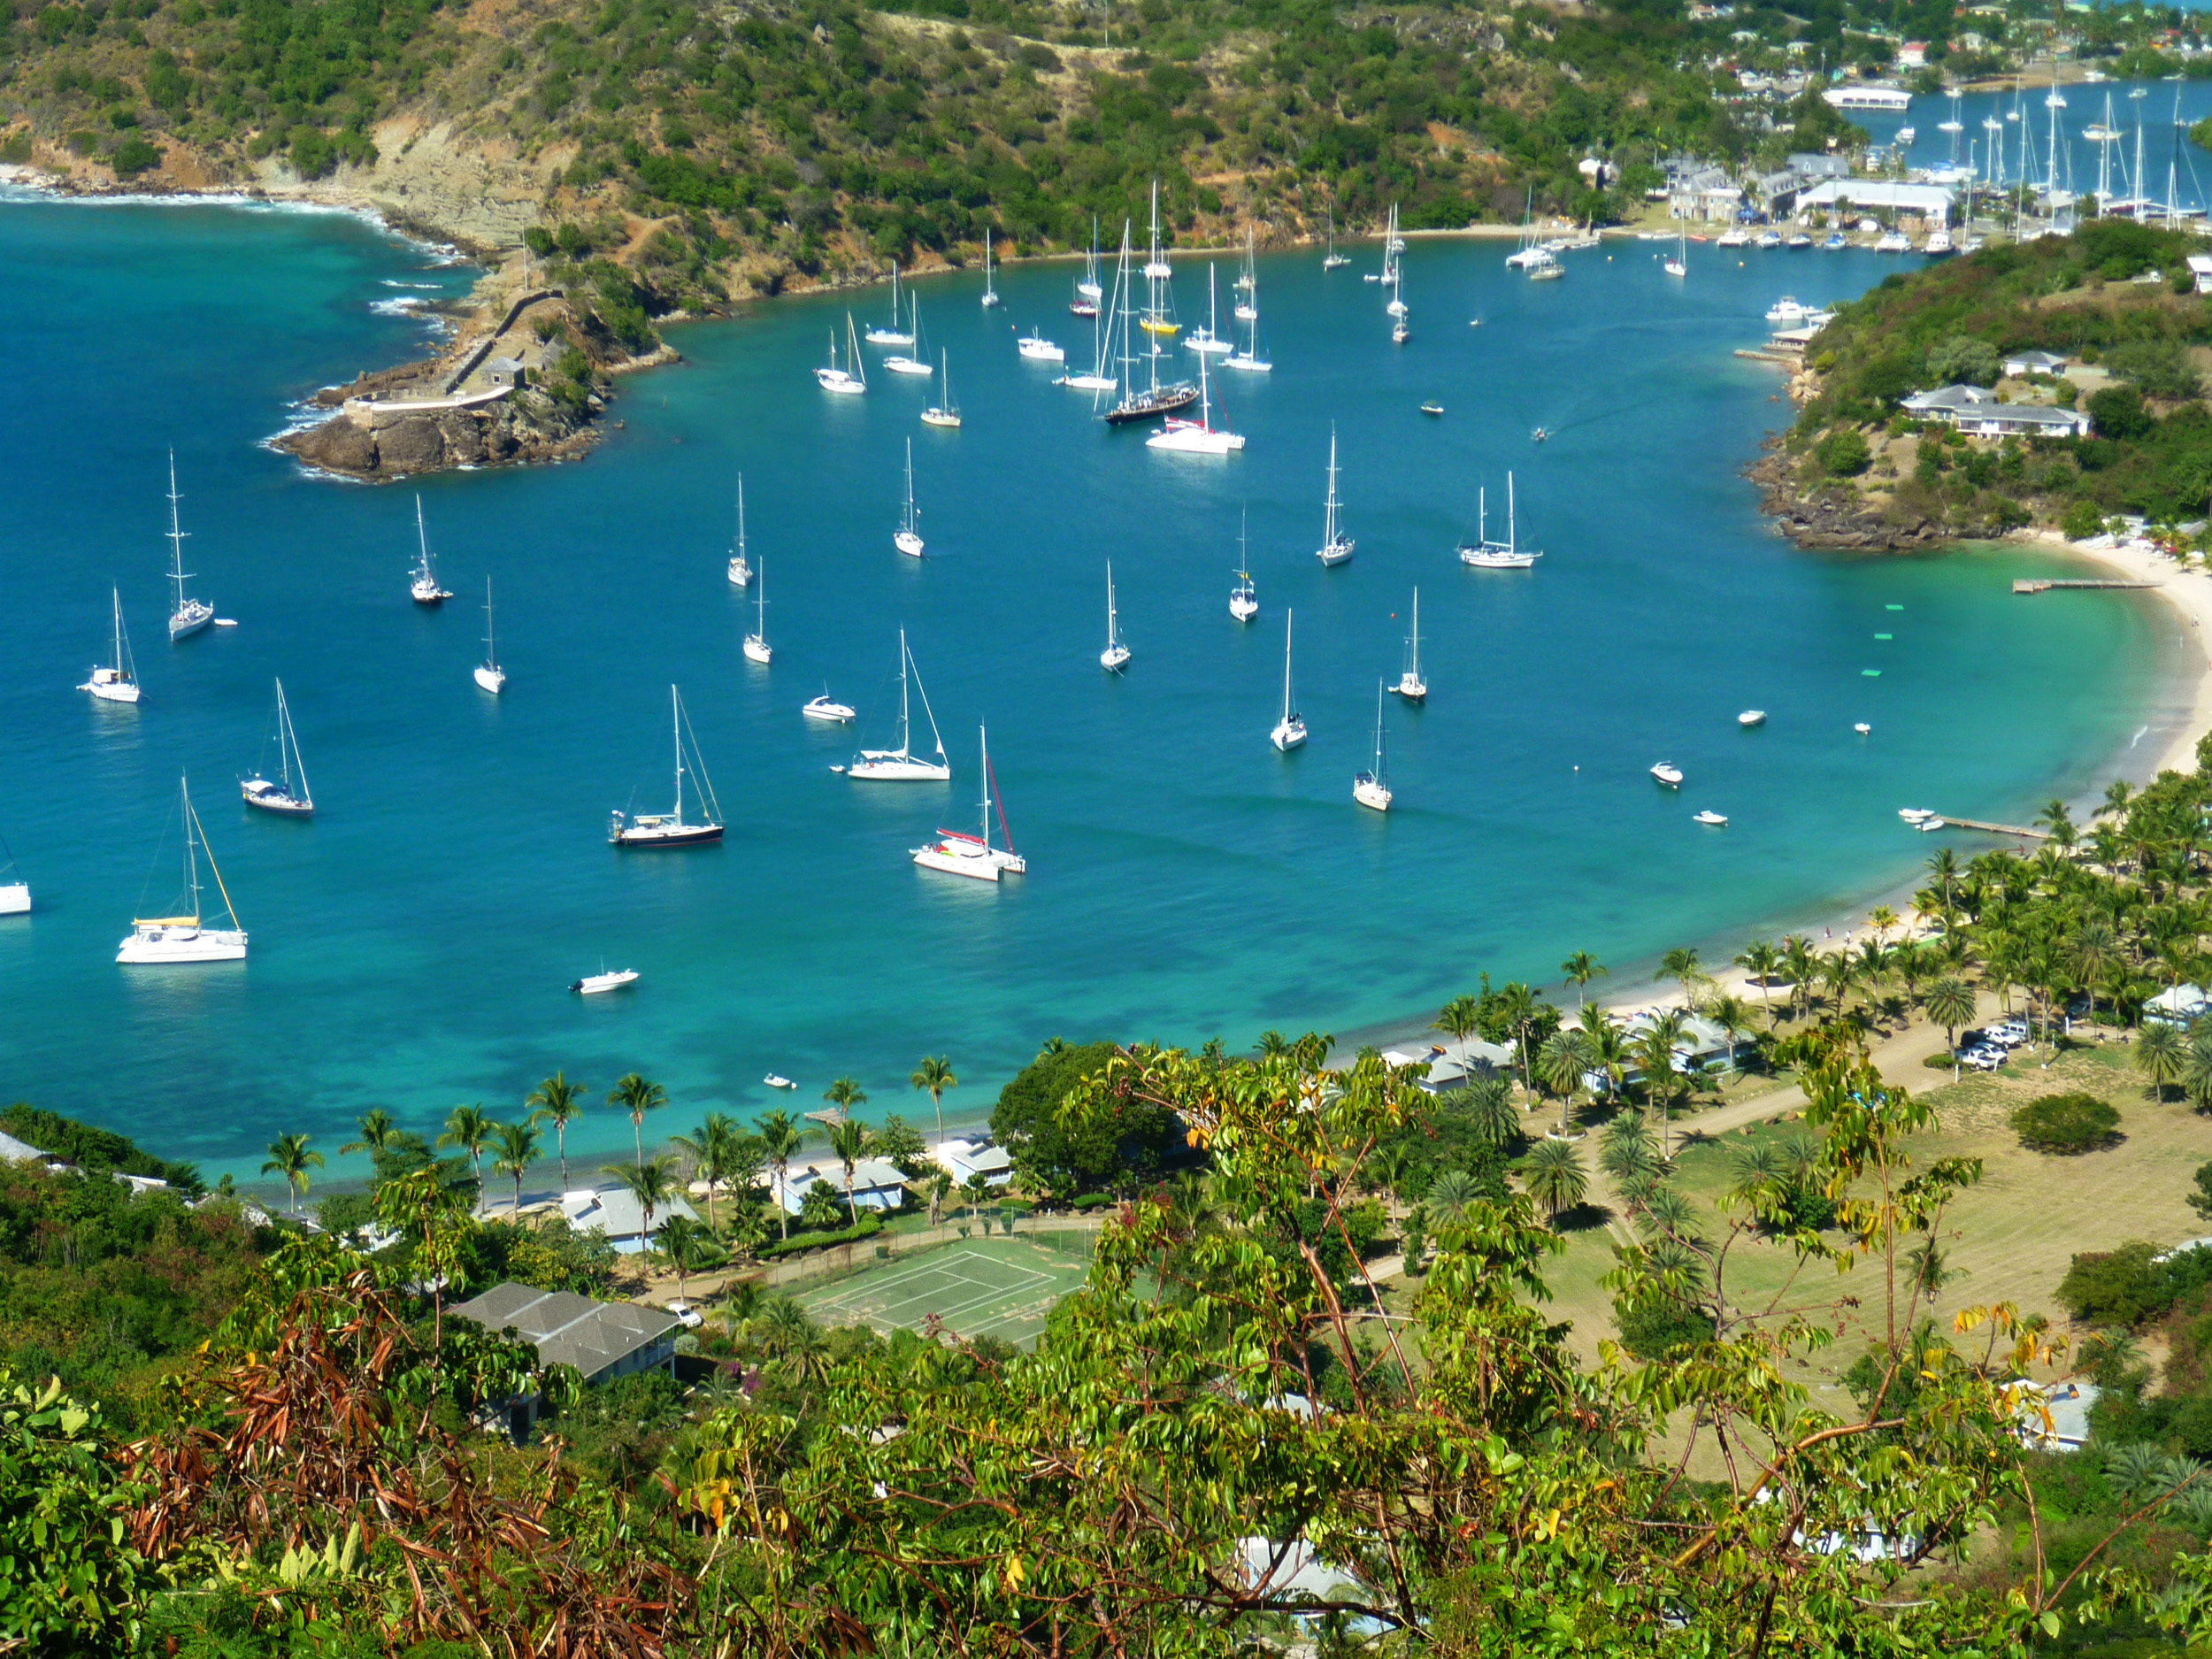 looking down towards nelsons dockyard on the island of antigua